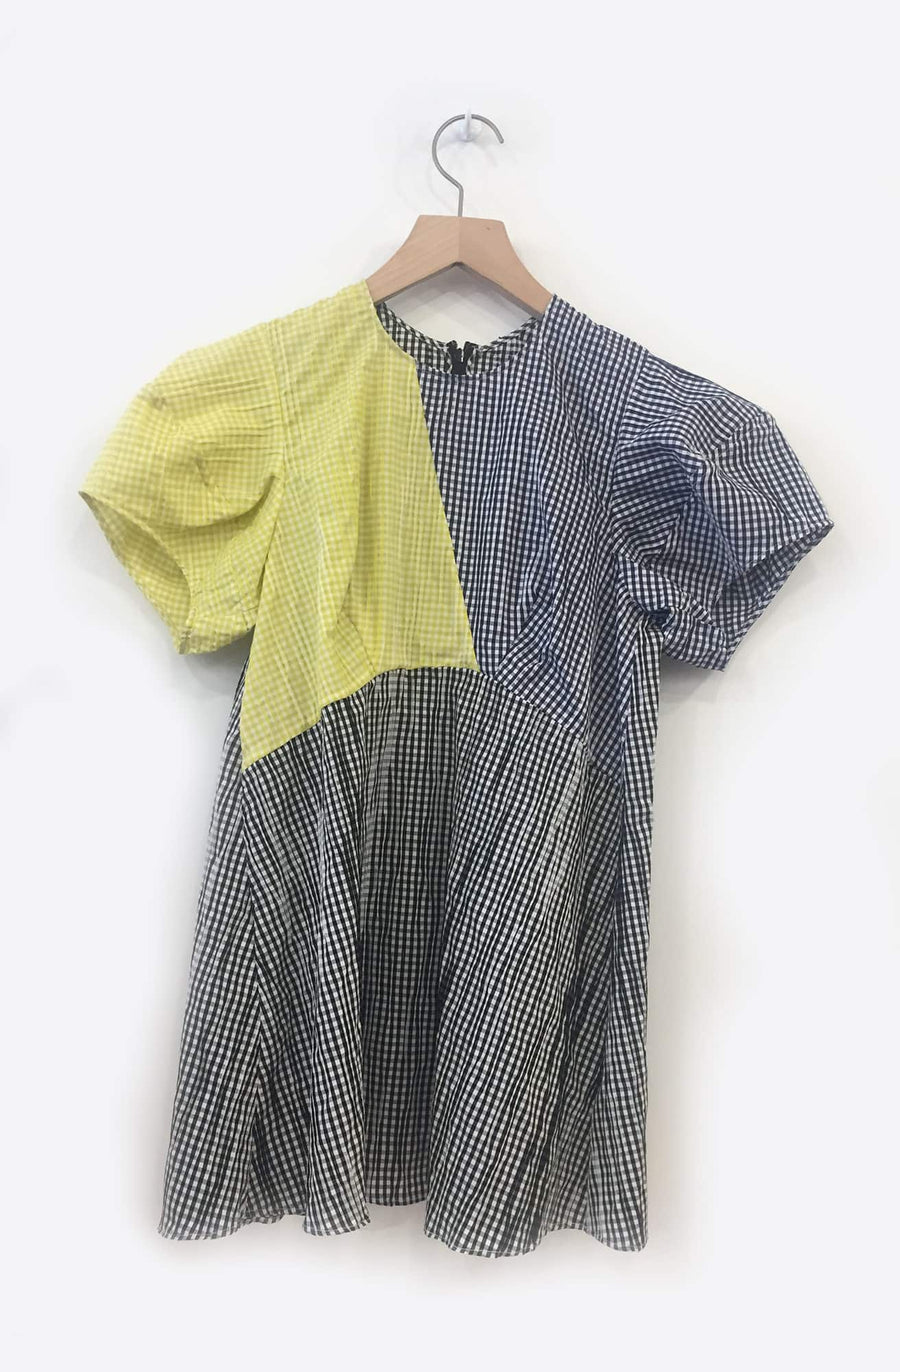 Kika Blouse-black/navy/lemon contrast